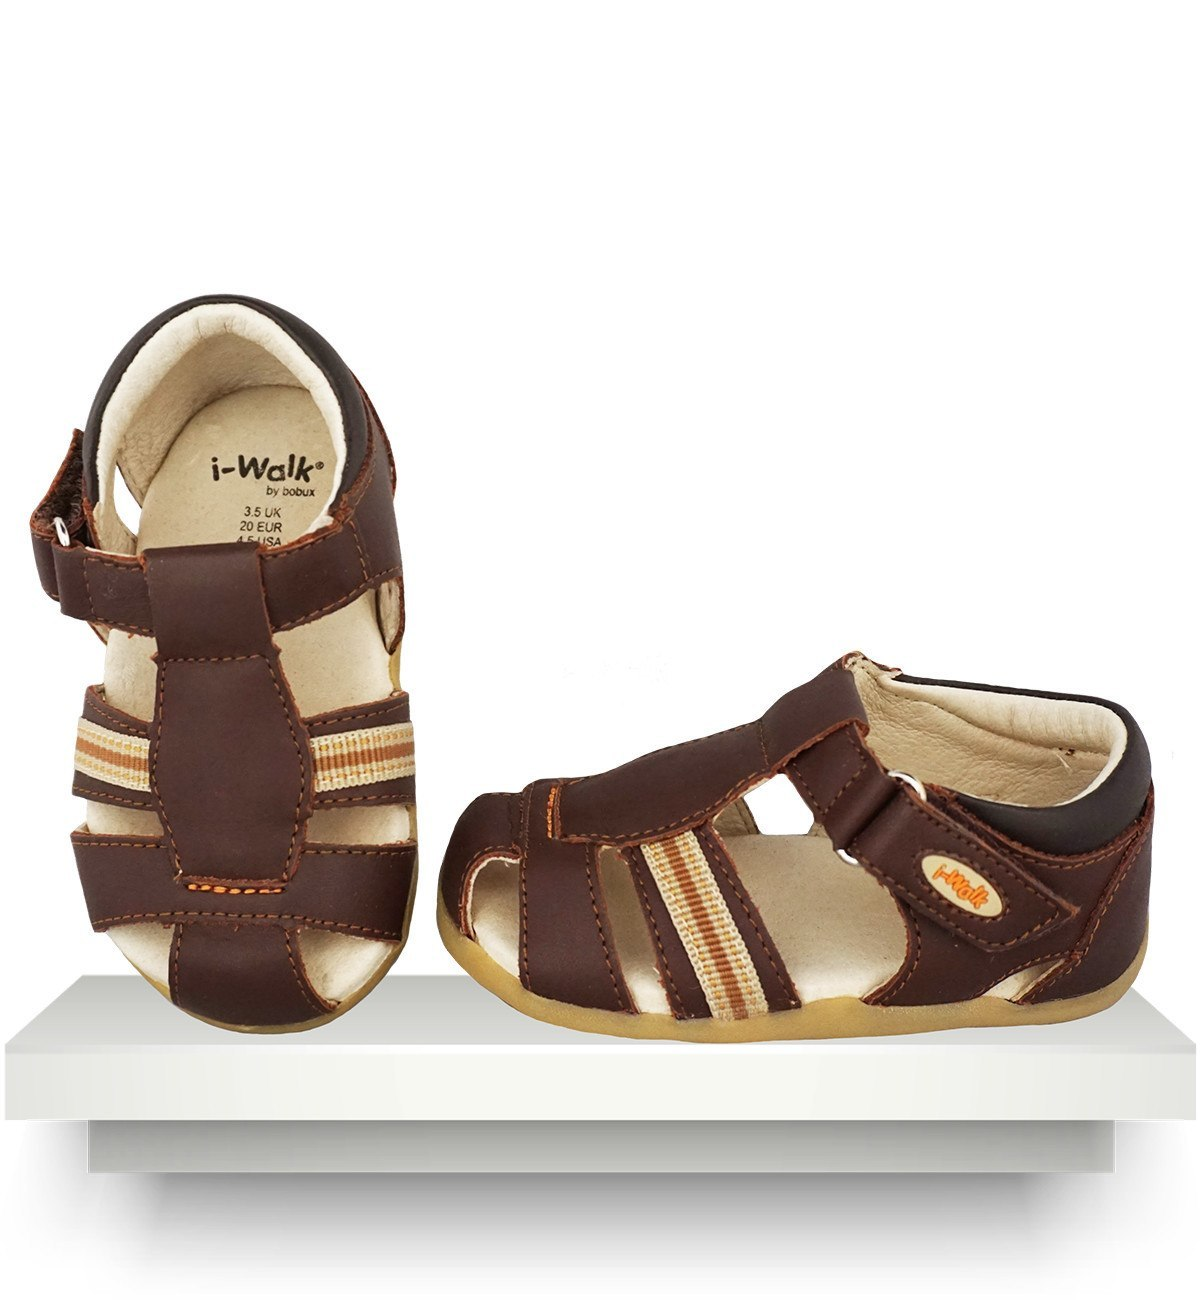 Spanish baby clothes | baby shoes | Brown sandals |babymaC  - 1